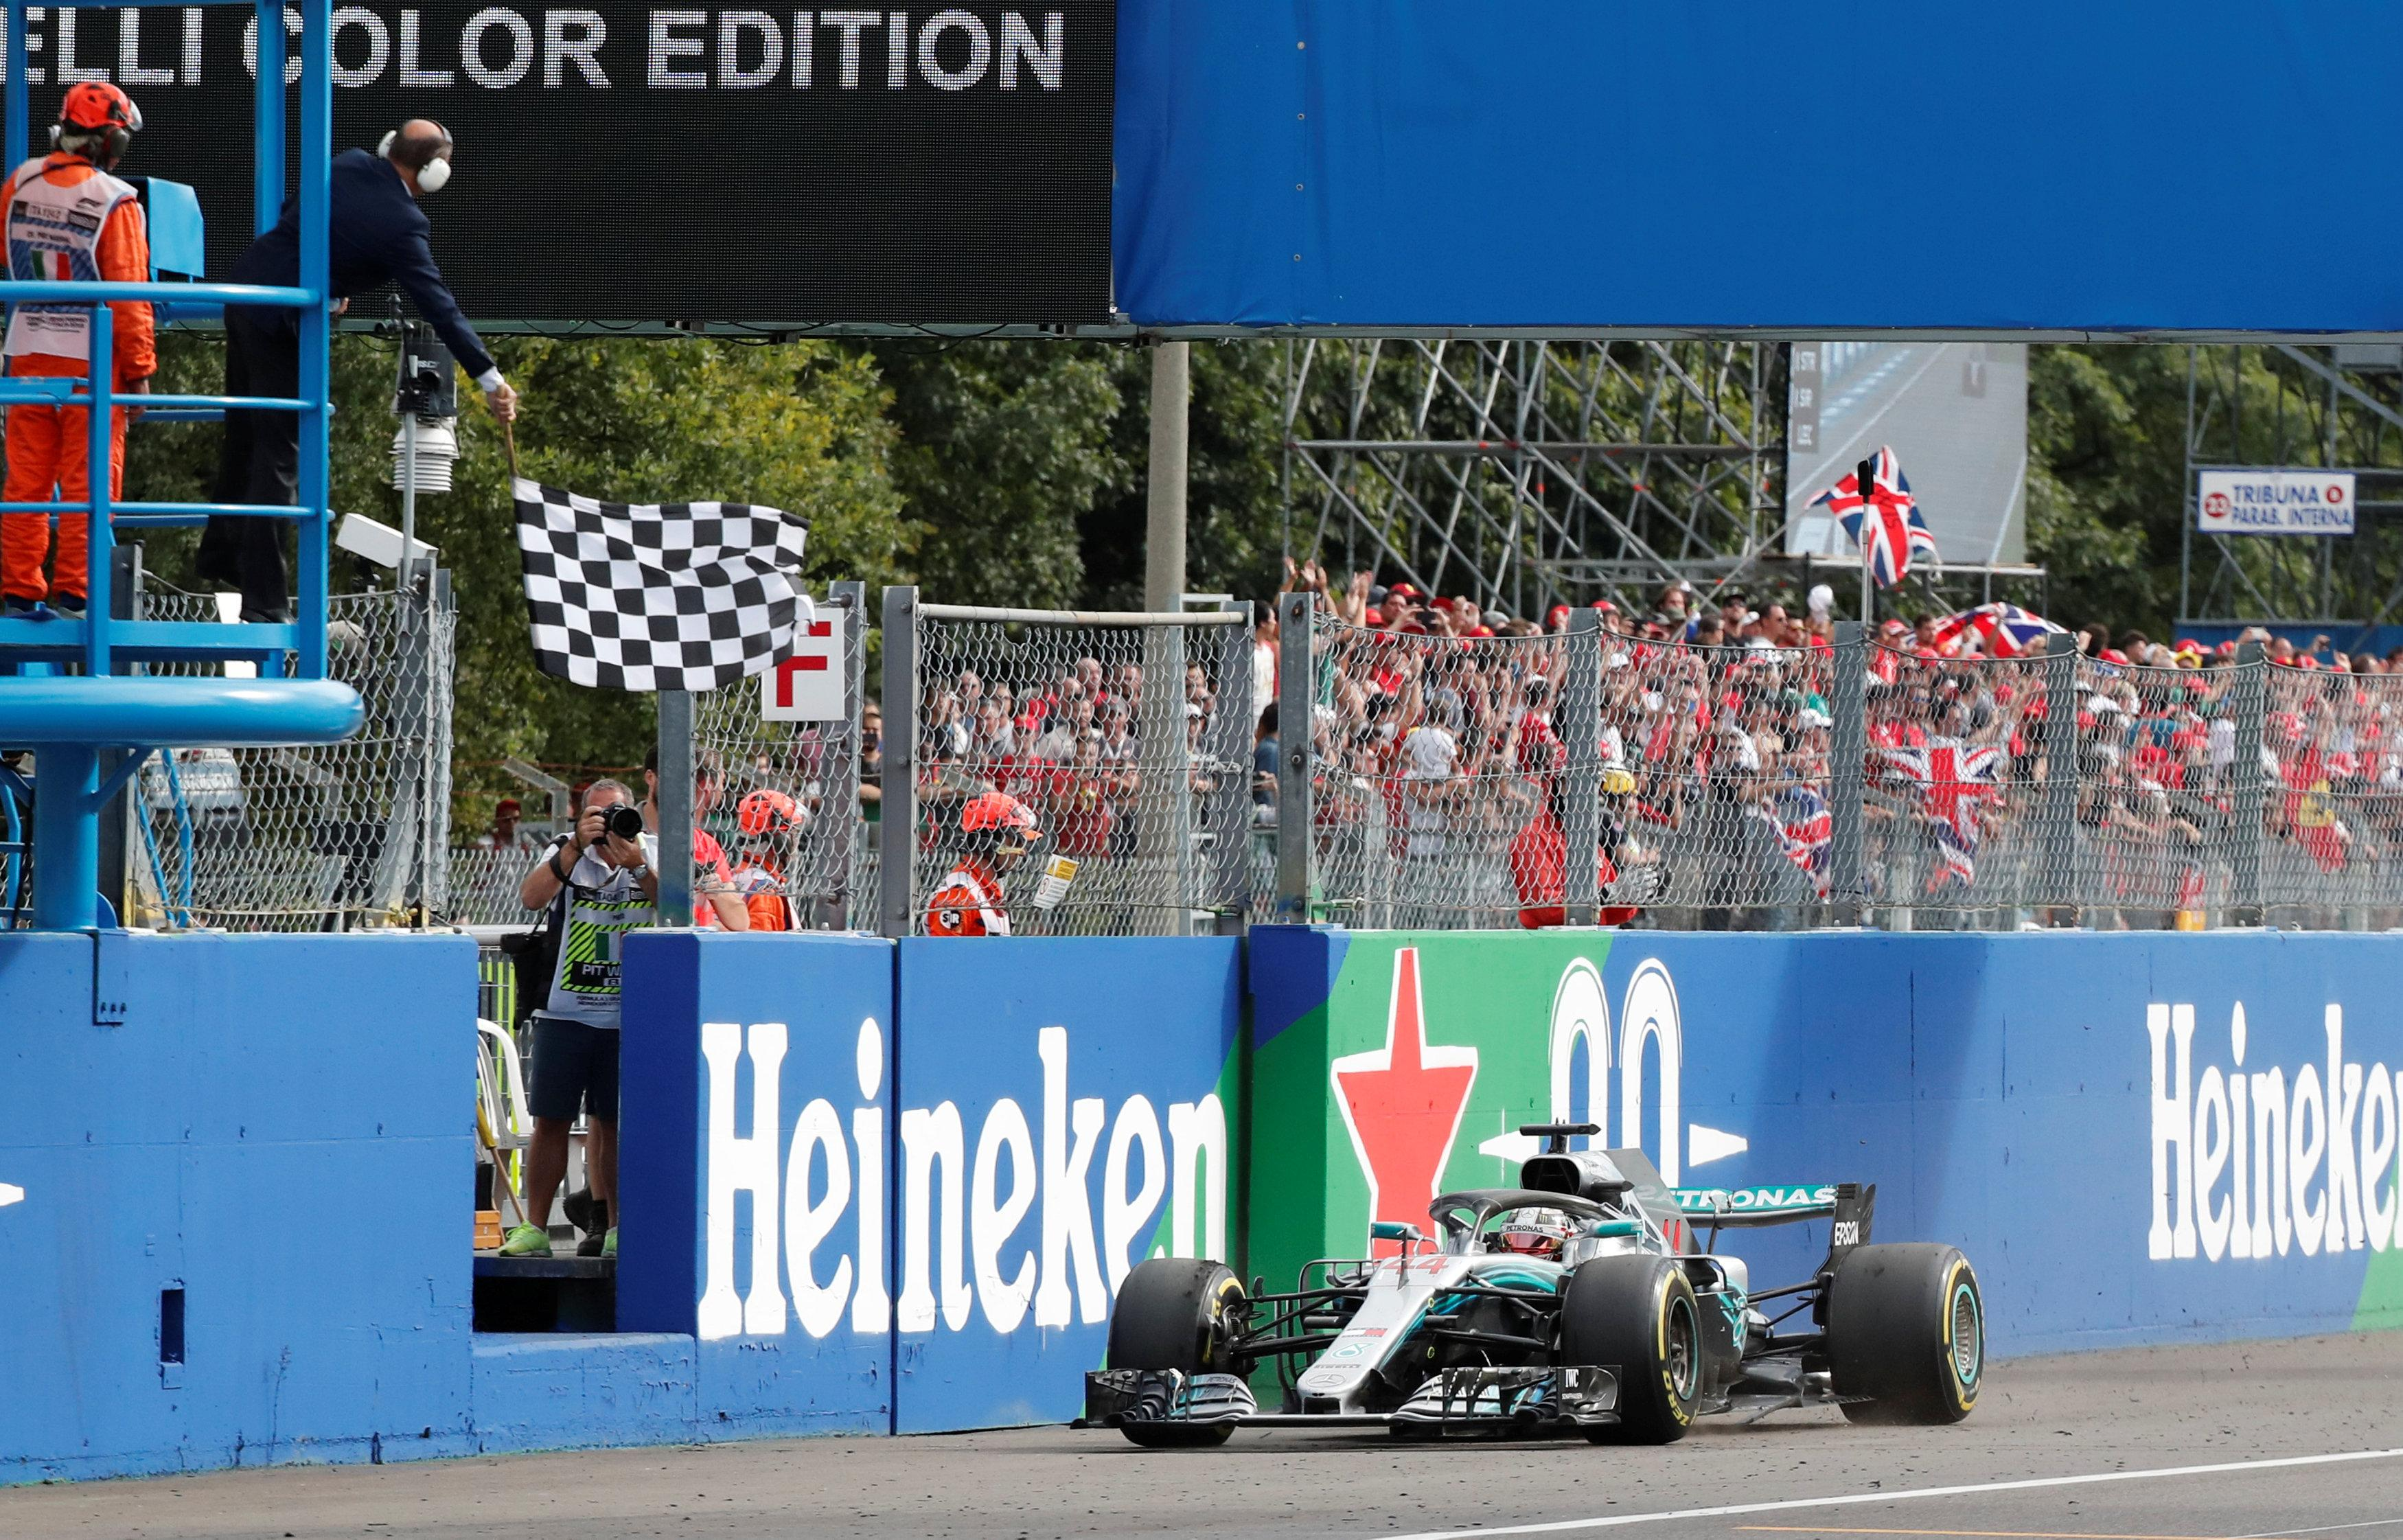 Hamilton took the chequered flag for victory to disappoint the fanatic Ferrari supporters